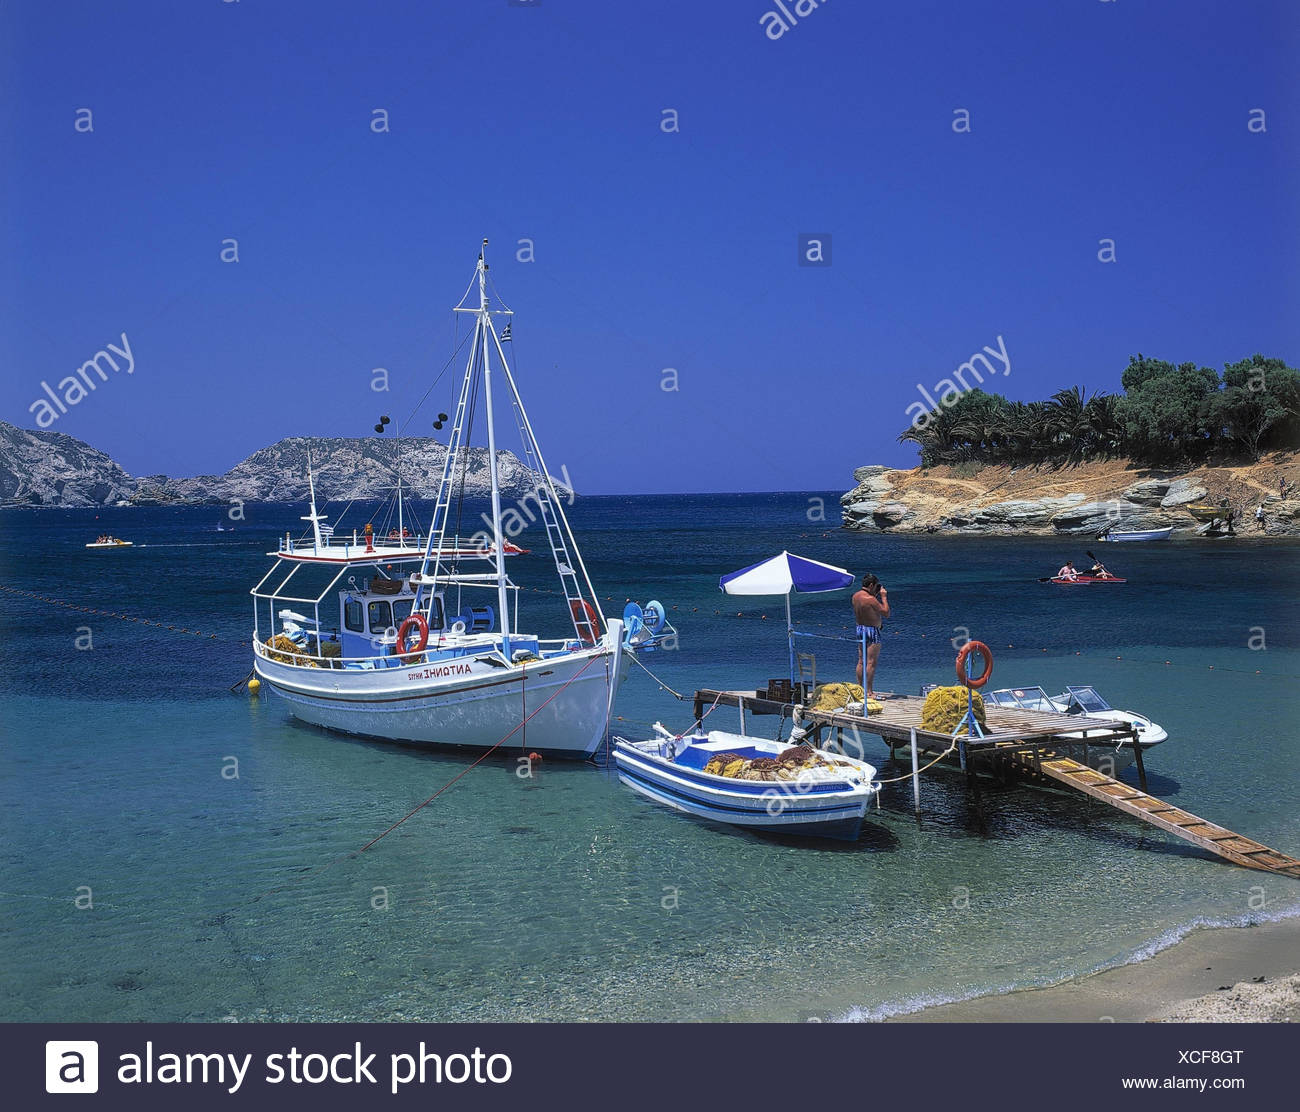 Greece, island Crete, Aghia Pelagia, bath bay, bridge, boots, outside, the Cyclades, Cyclades island, beach, sandy beach, bay, sea, the Mediterranean Sea, bathers, seaside resort, ships, motorboats, excursion boat, landing stage - Stock Image